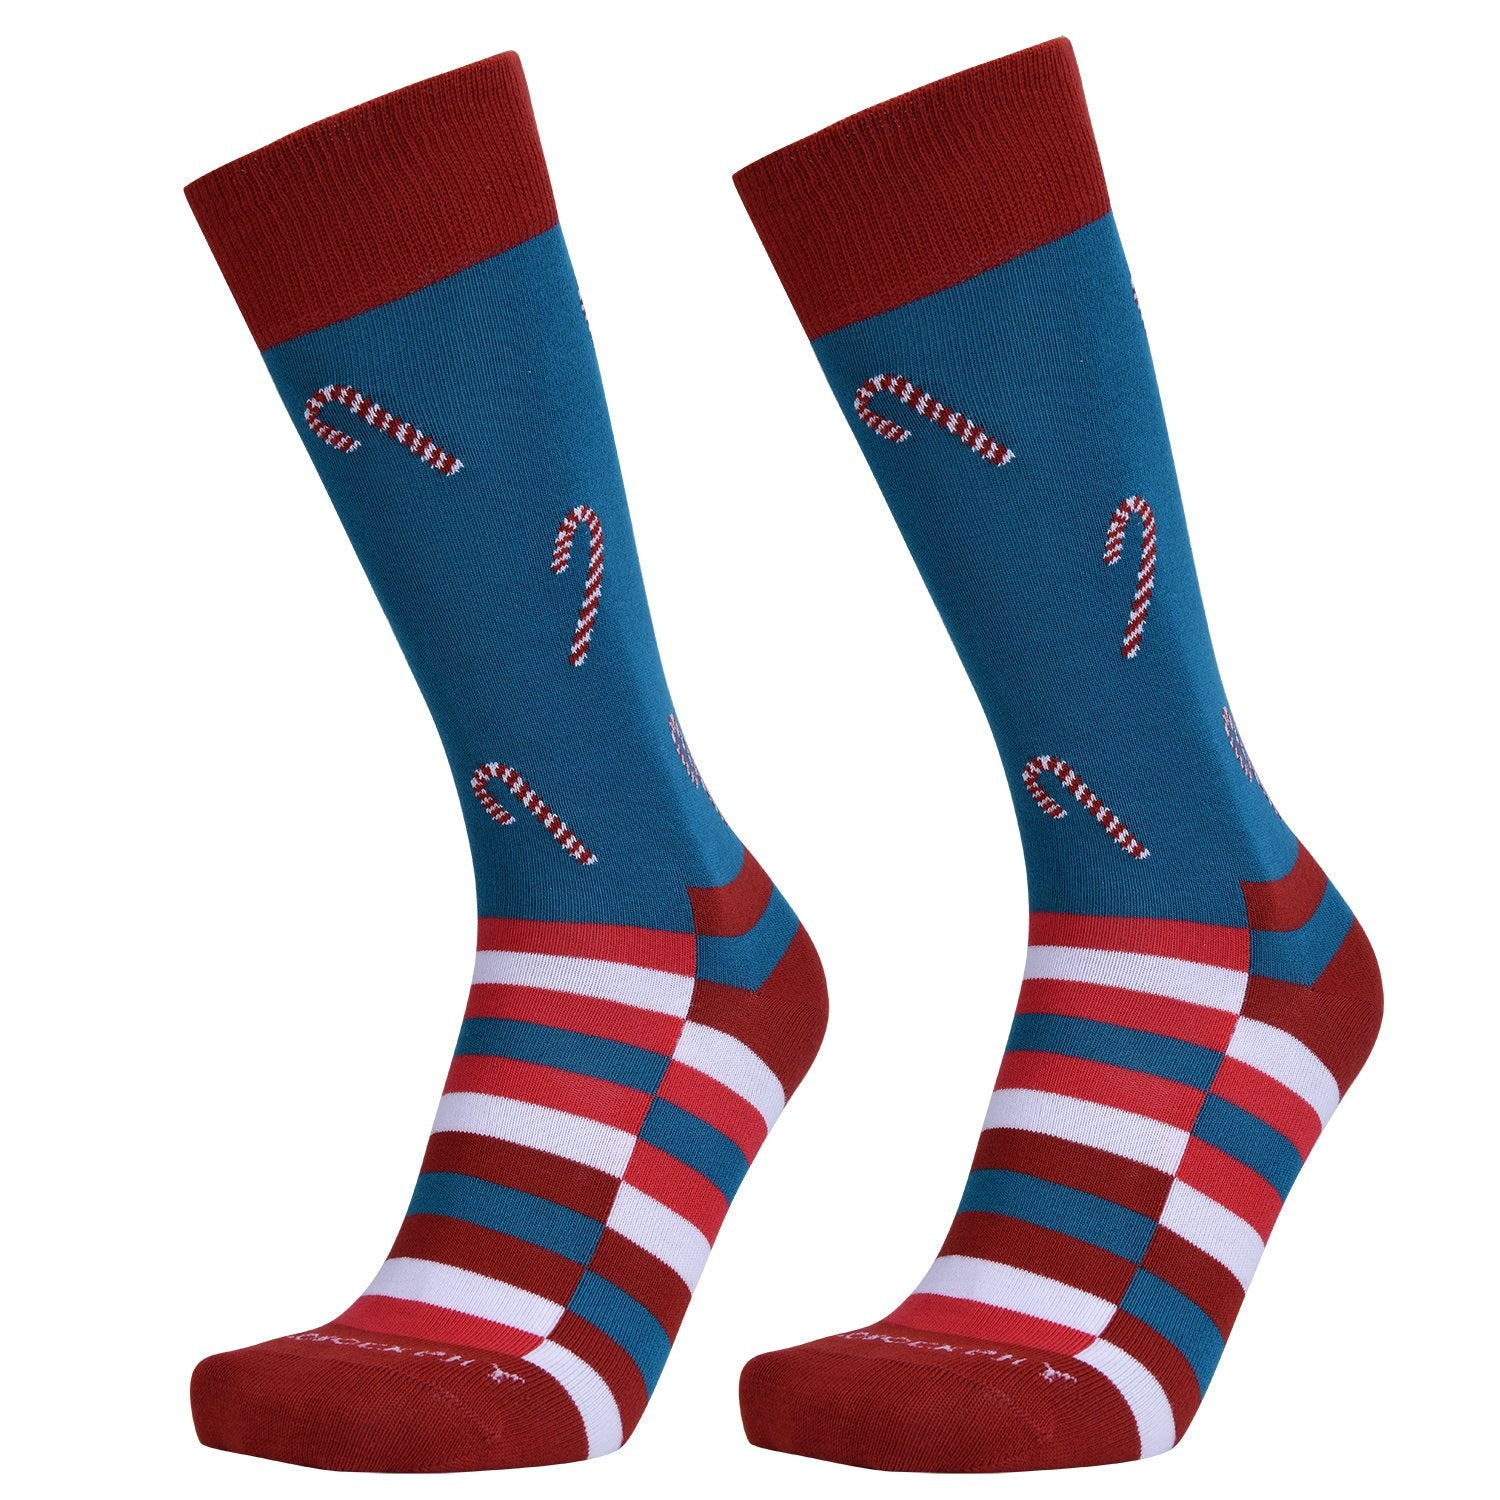 Socks-Holiday-Cool-Patterns-Crew-Socks-1